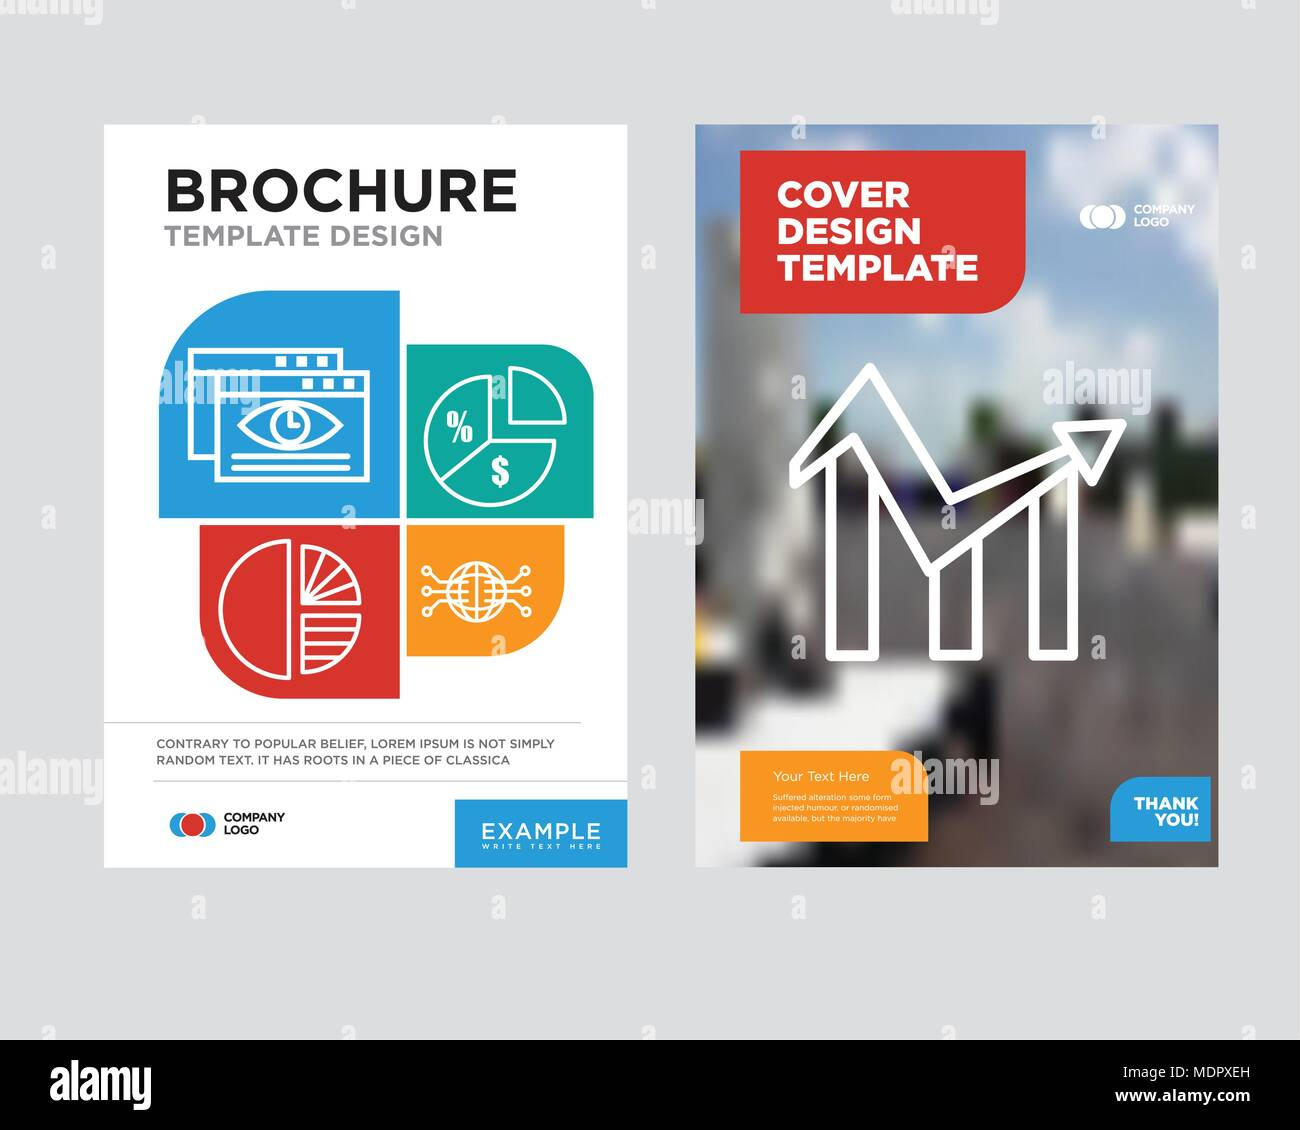 Chart Brochure Flyer Design Template With Abstract Photo Background